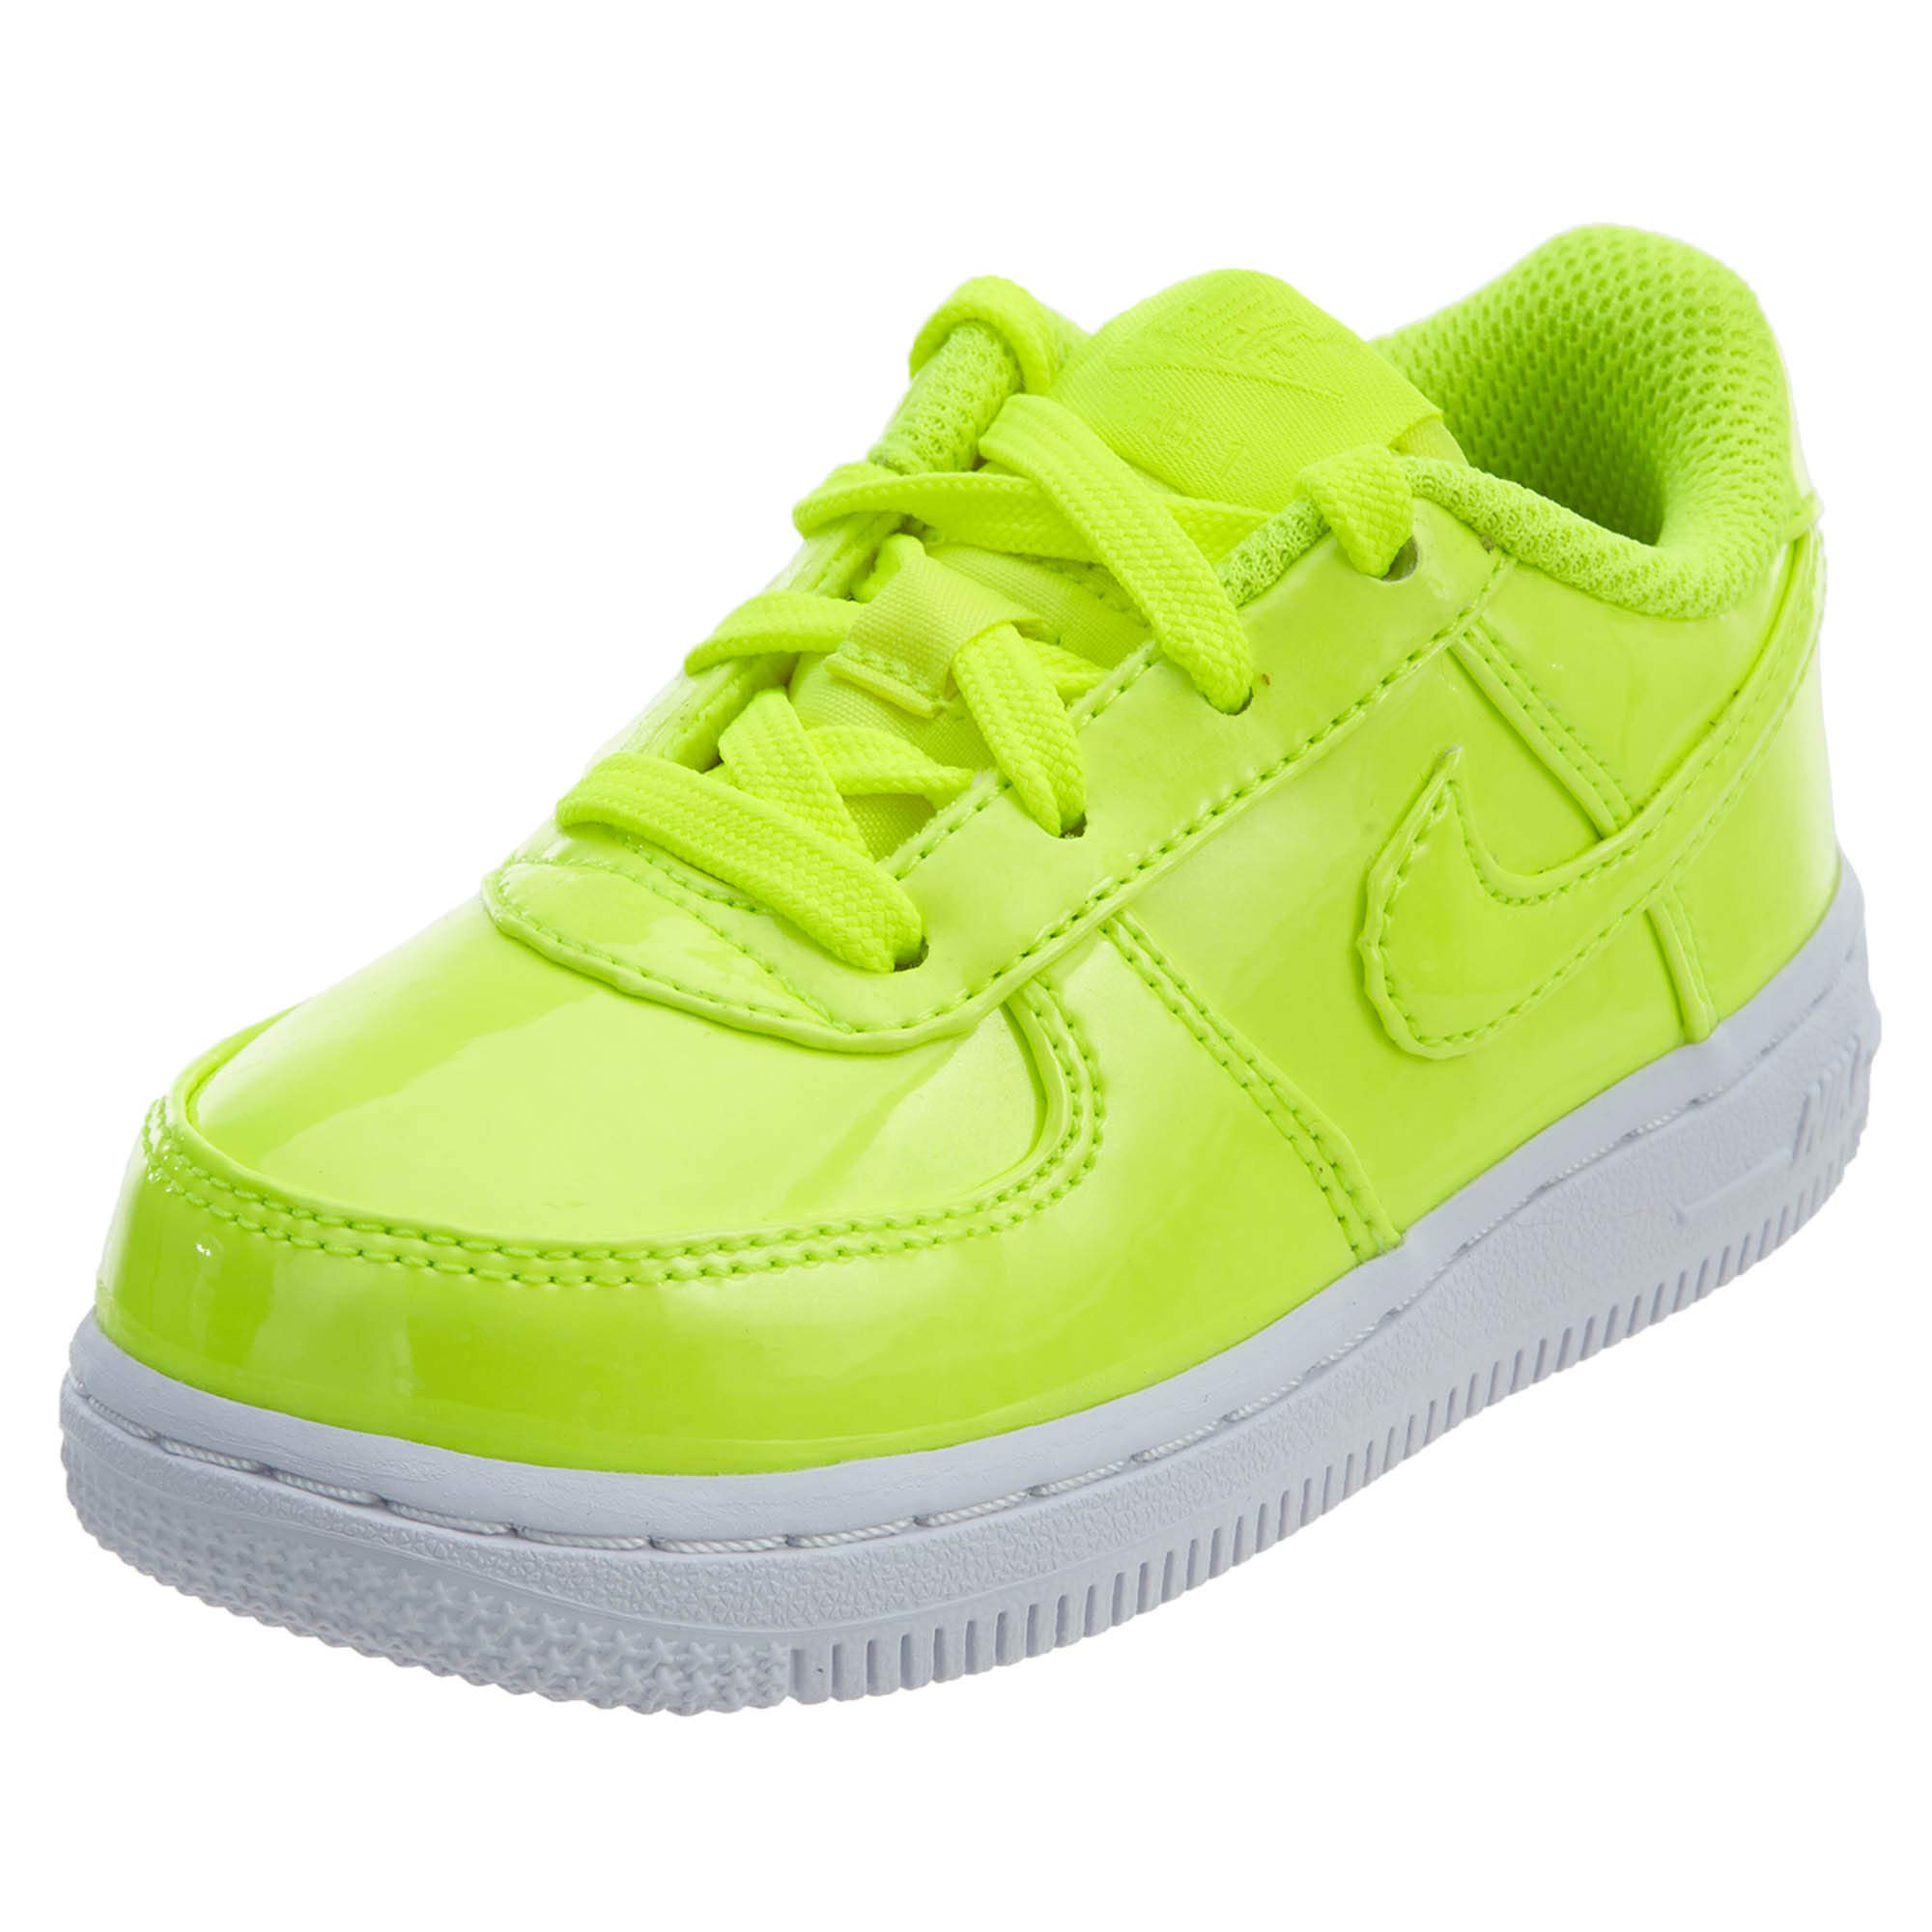 Nike Force 1 Lv8 Uv Toddlers Style: AO2288-700 Size: 10